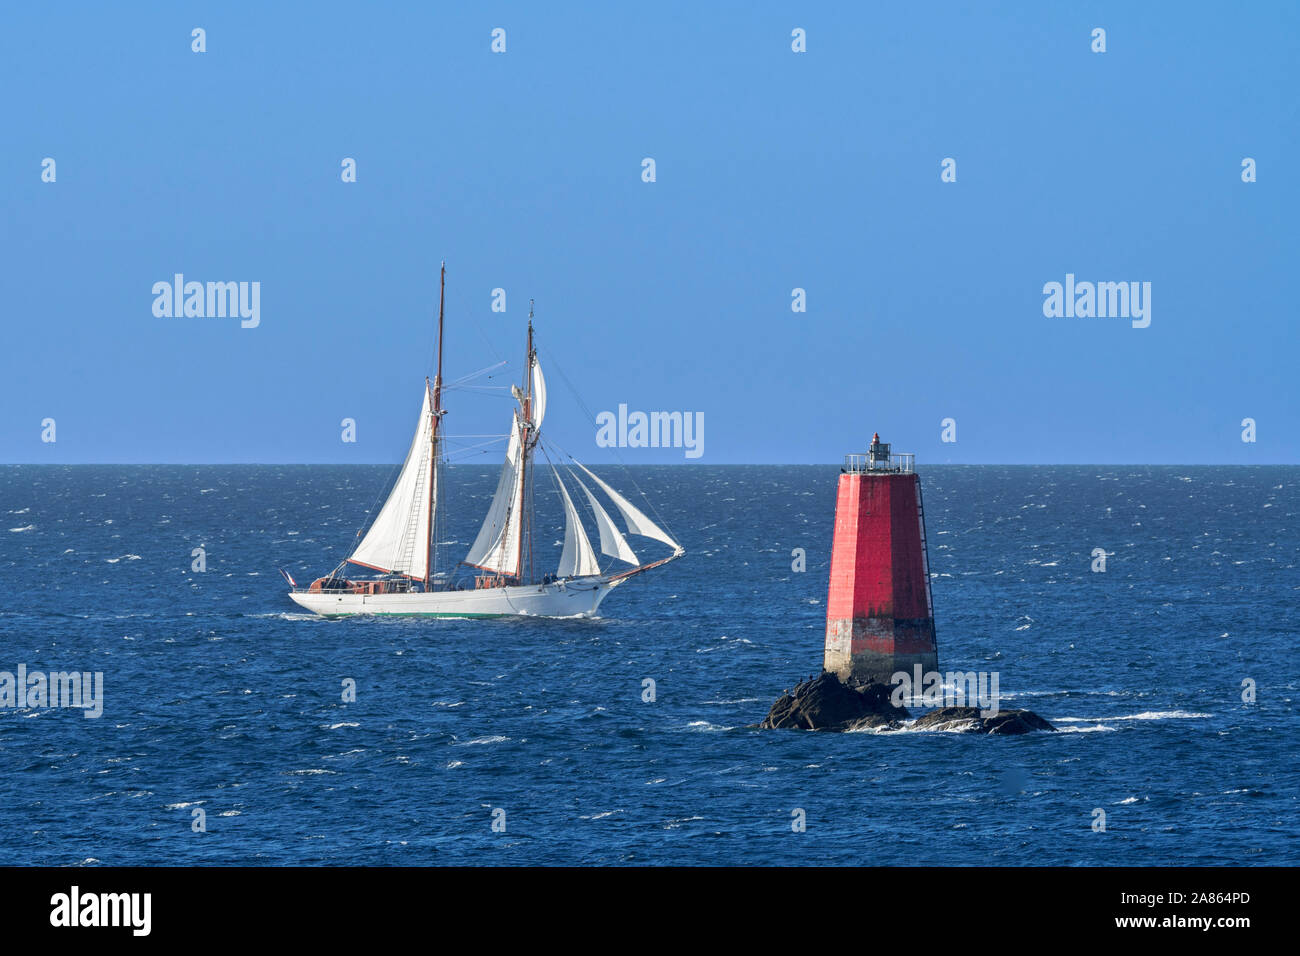 Sailing ship passing red sea mark / seamark / navigation mark on the shallows Les Vieux Moines at Pointe Saint-Mathieu, Finistère, Brittany, France Stock Photo